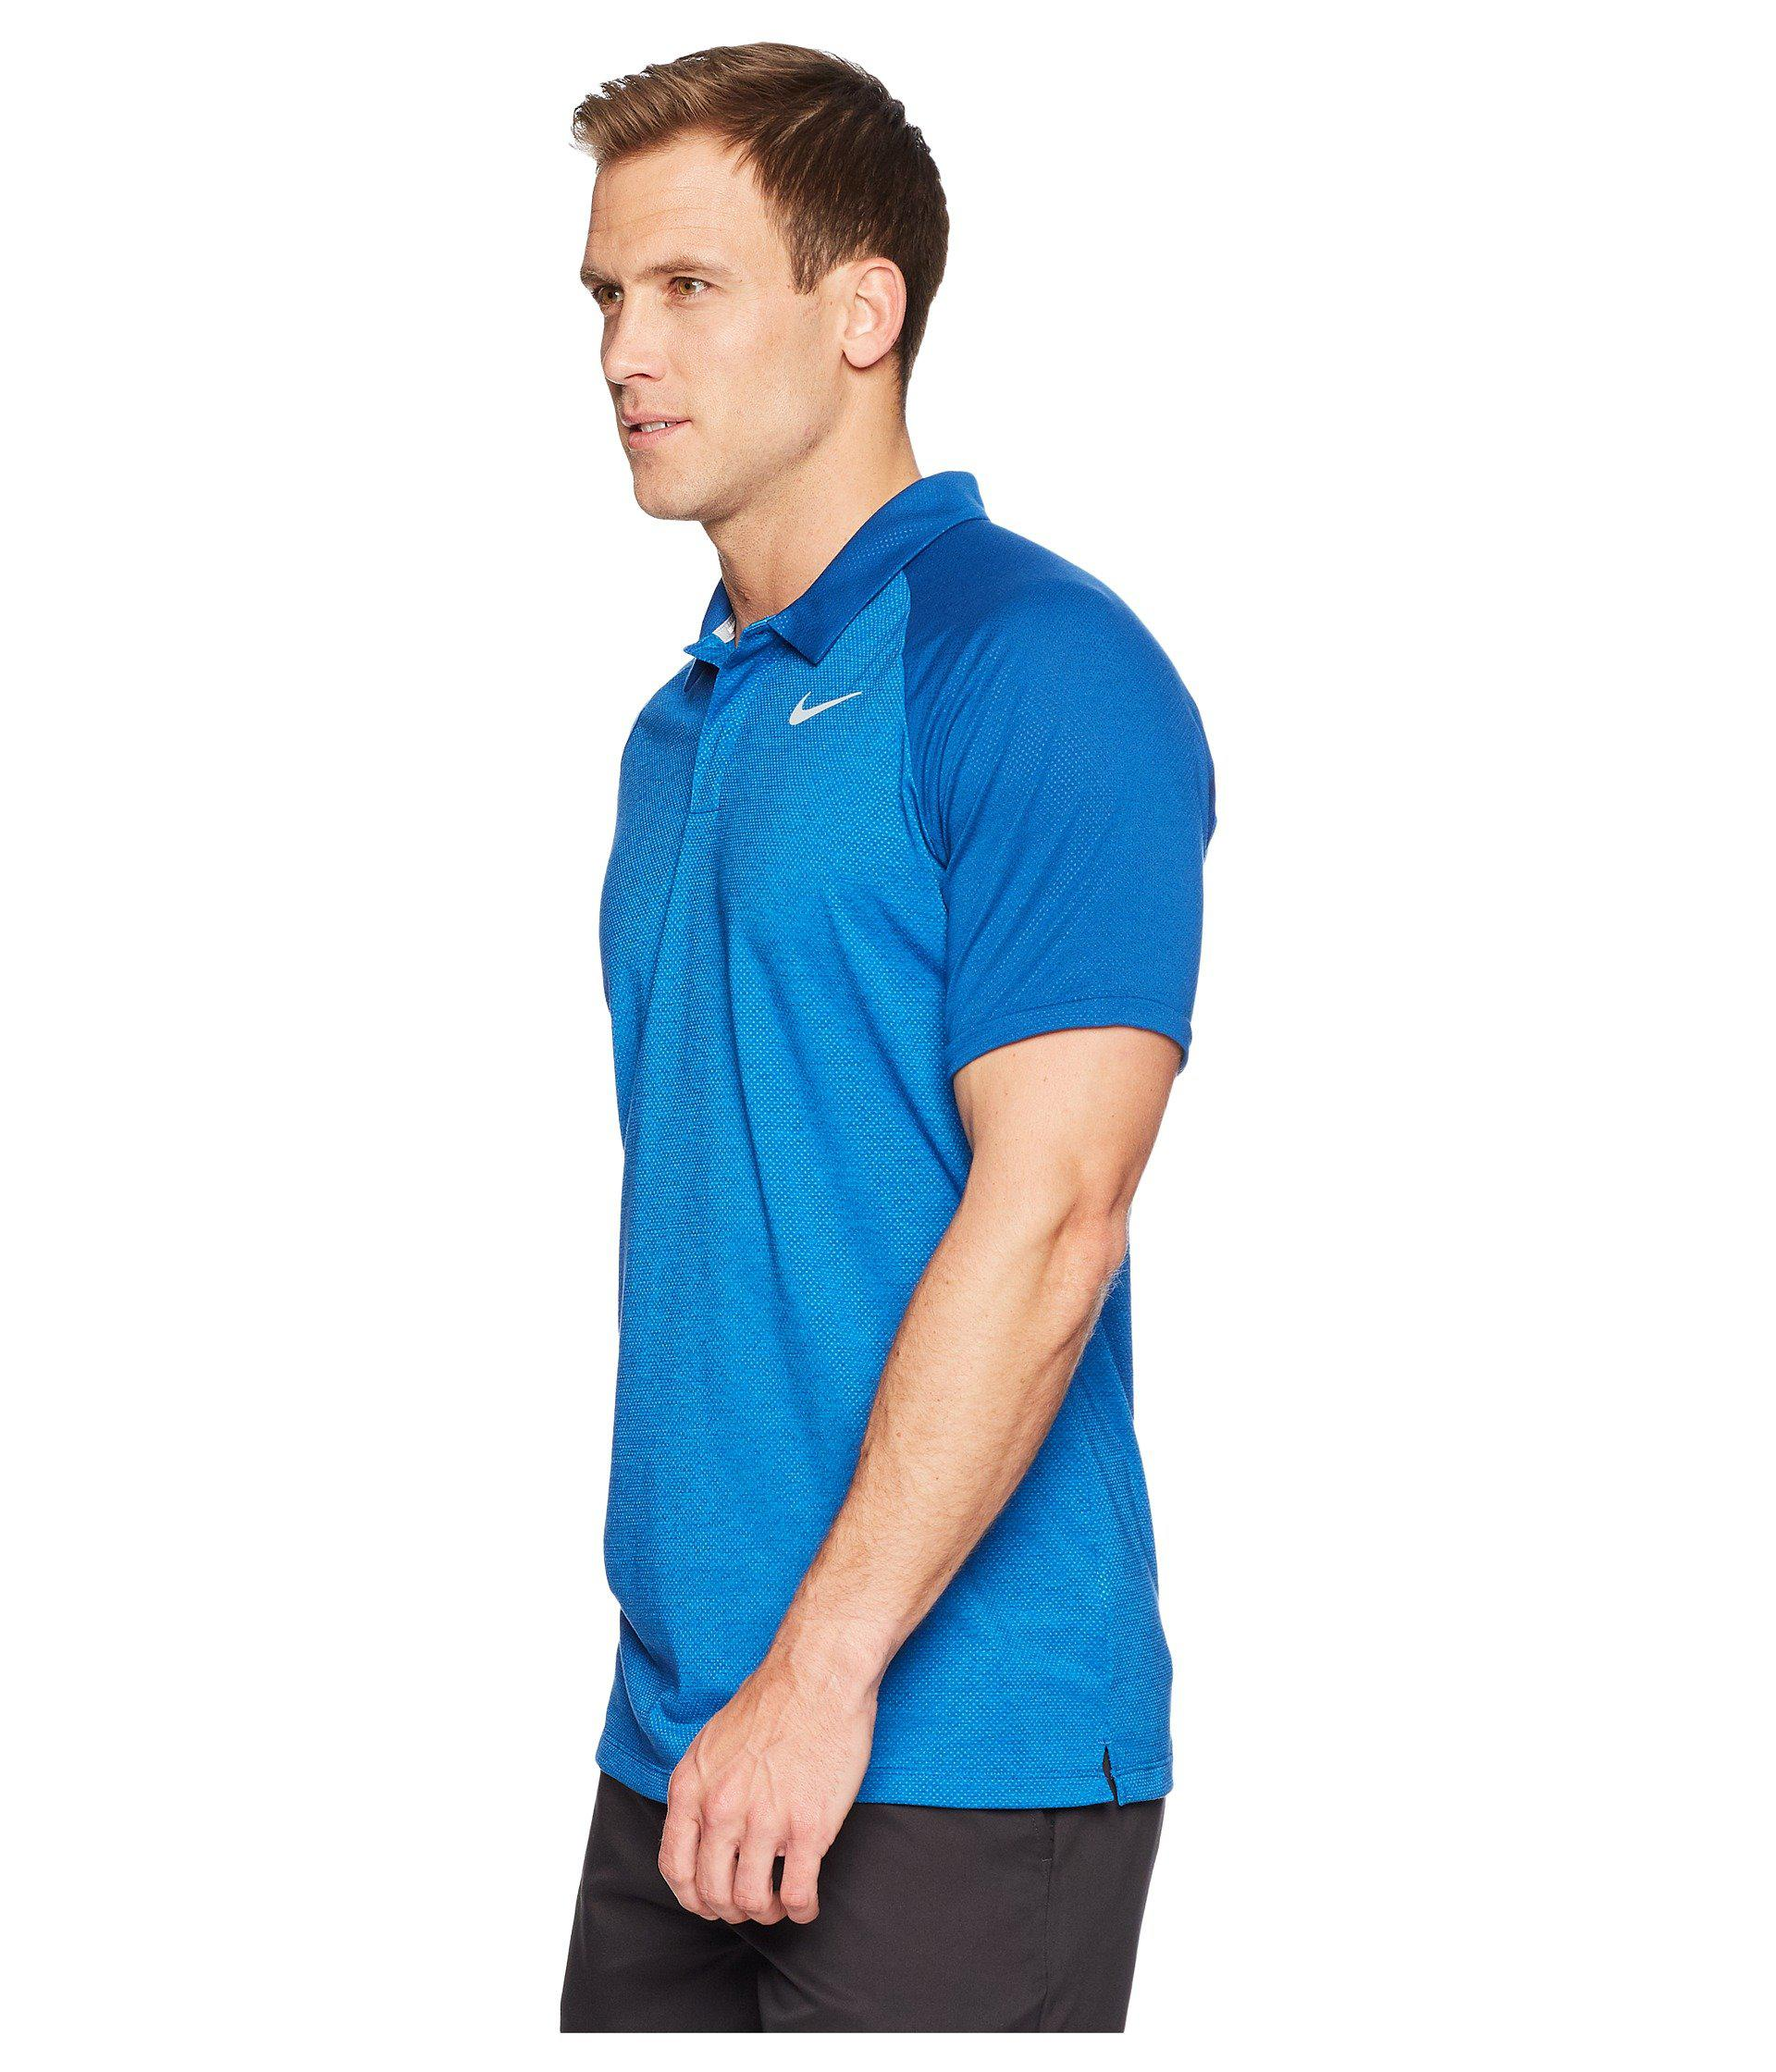 3a2bef72 Nike Dry Polo Raglan in Blue for Men - Lyst